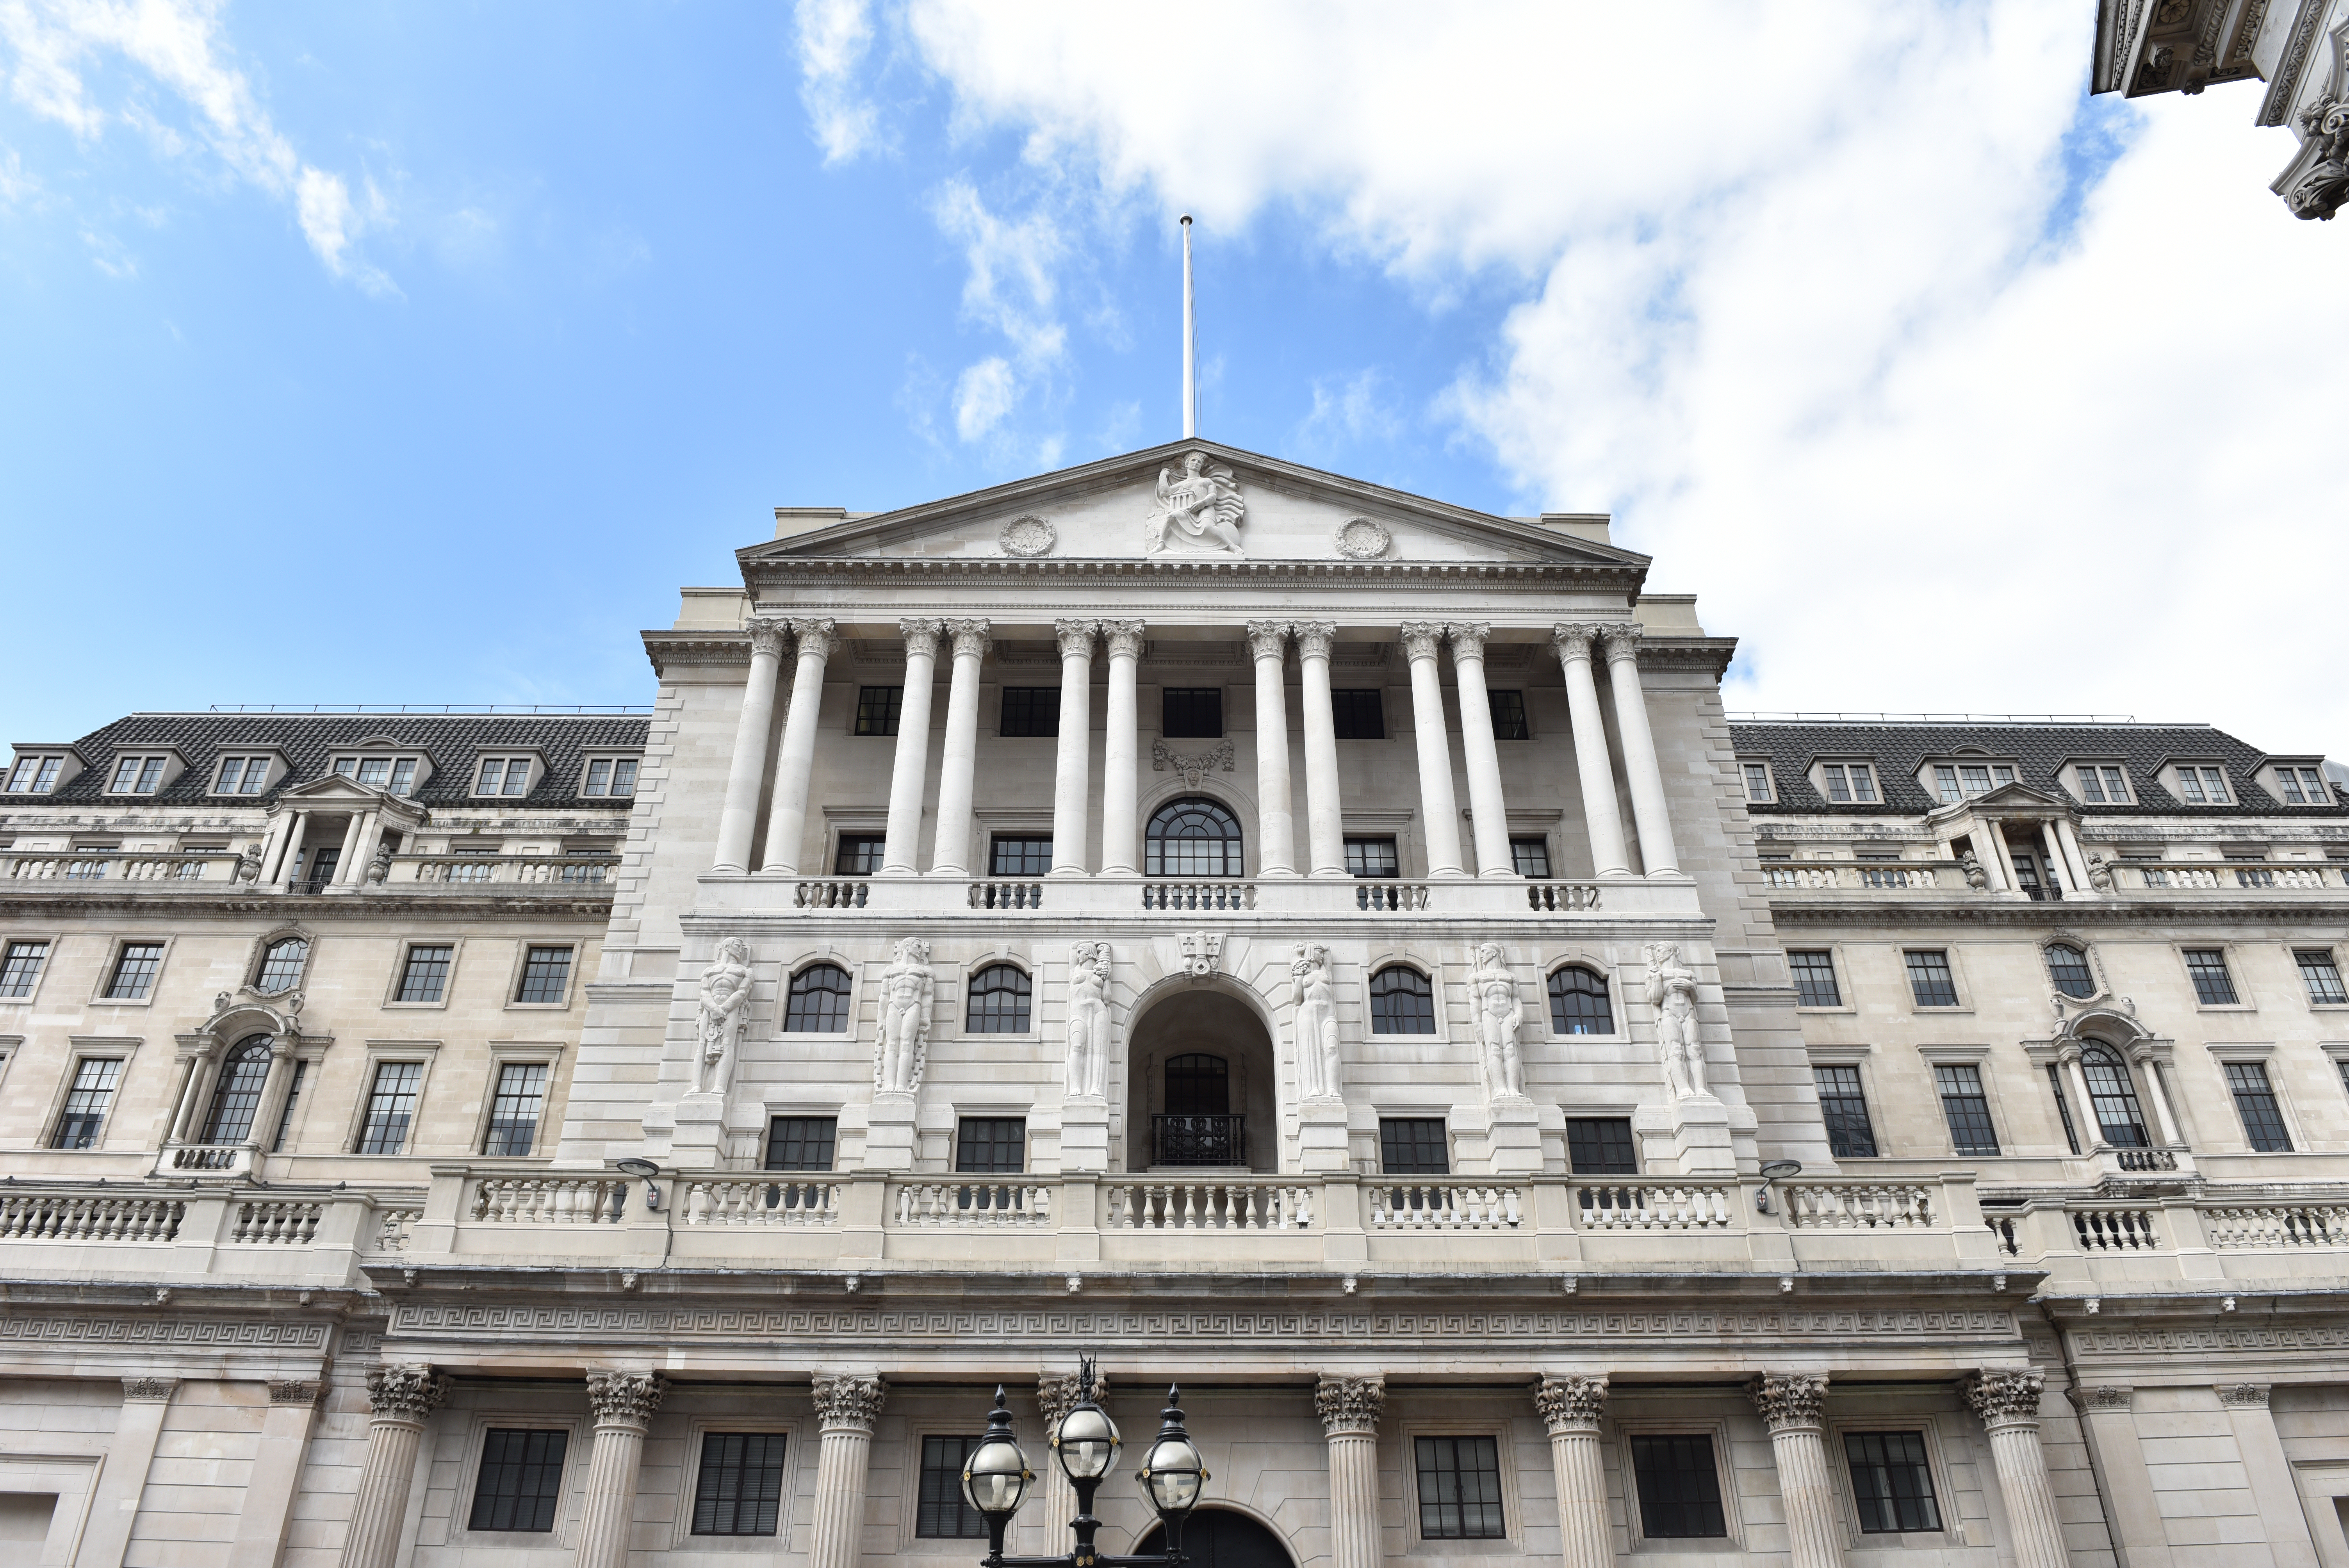 LONDON, UNITED KINGDOM - MAY 13: A general view of the Bank of England on May 13, 2017 in London, England. (Photo by John Keeble/Getty Images)